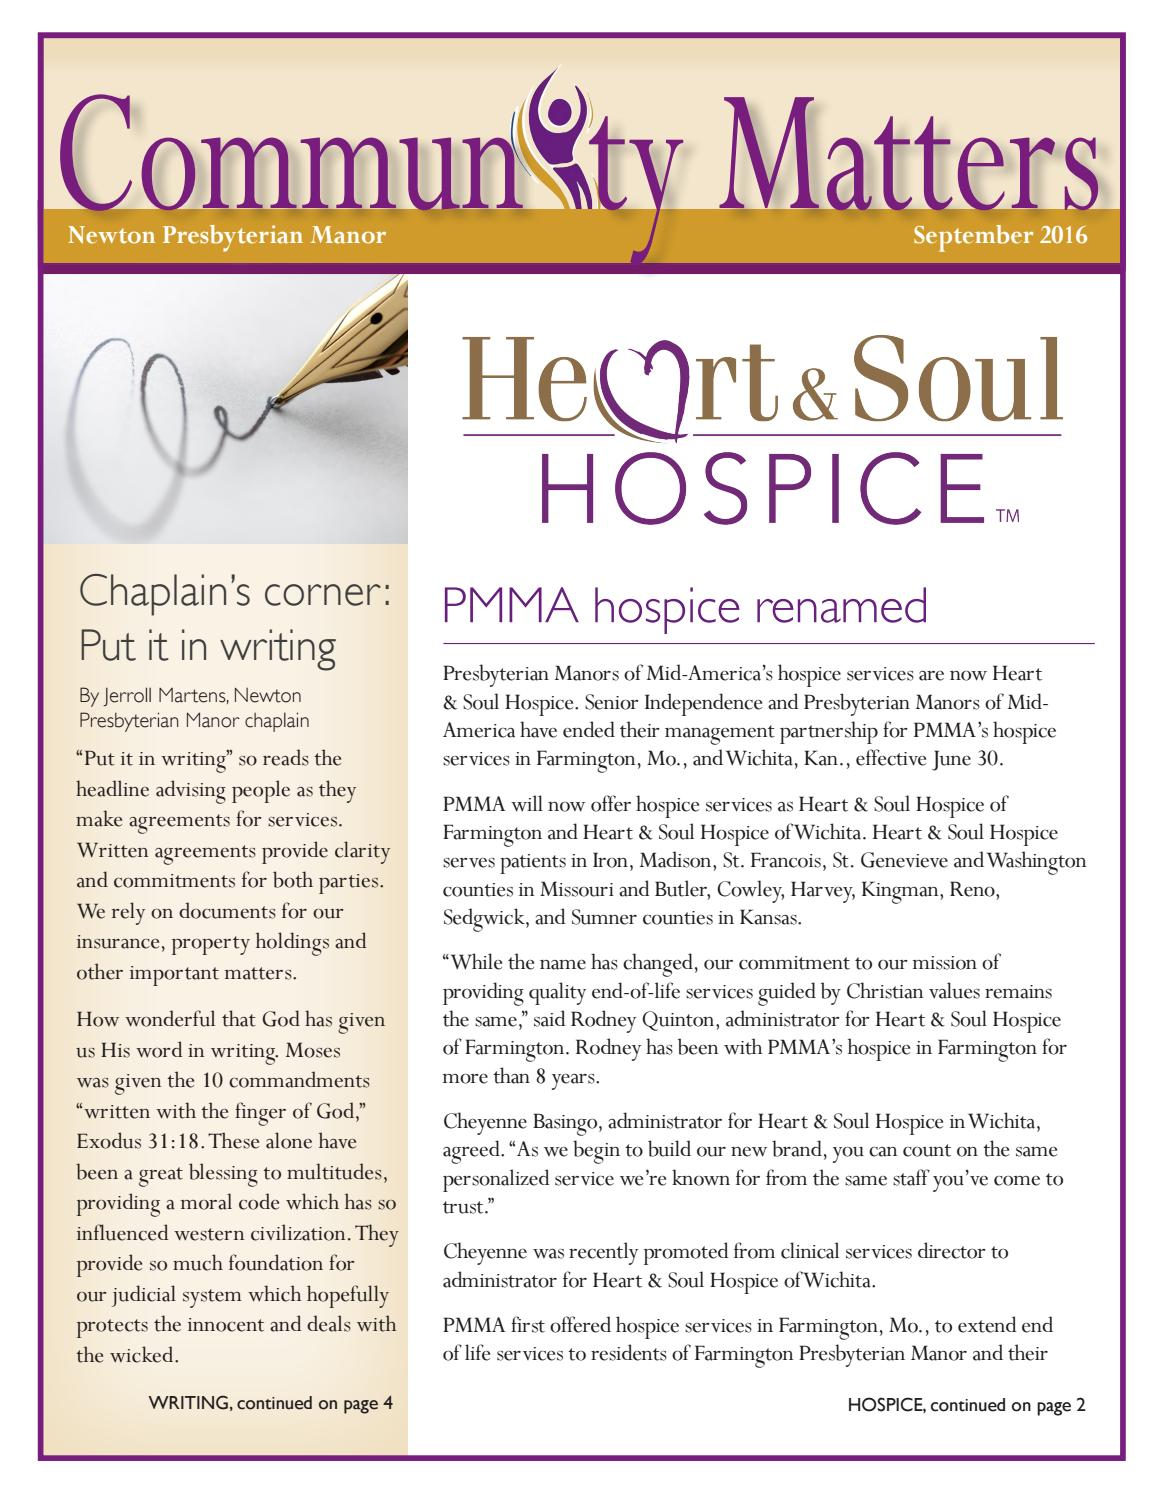 Newton Community Matters September 2016 by Presbyterian Manors of